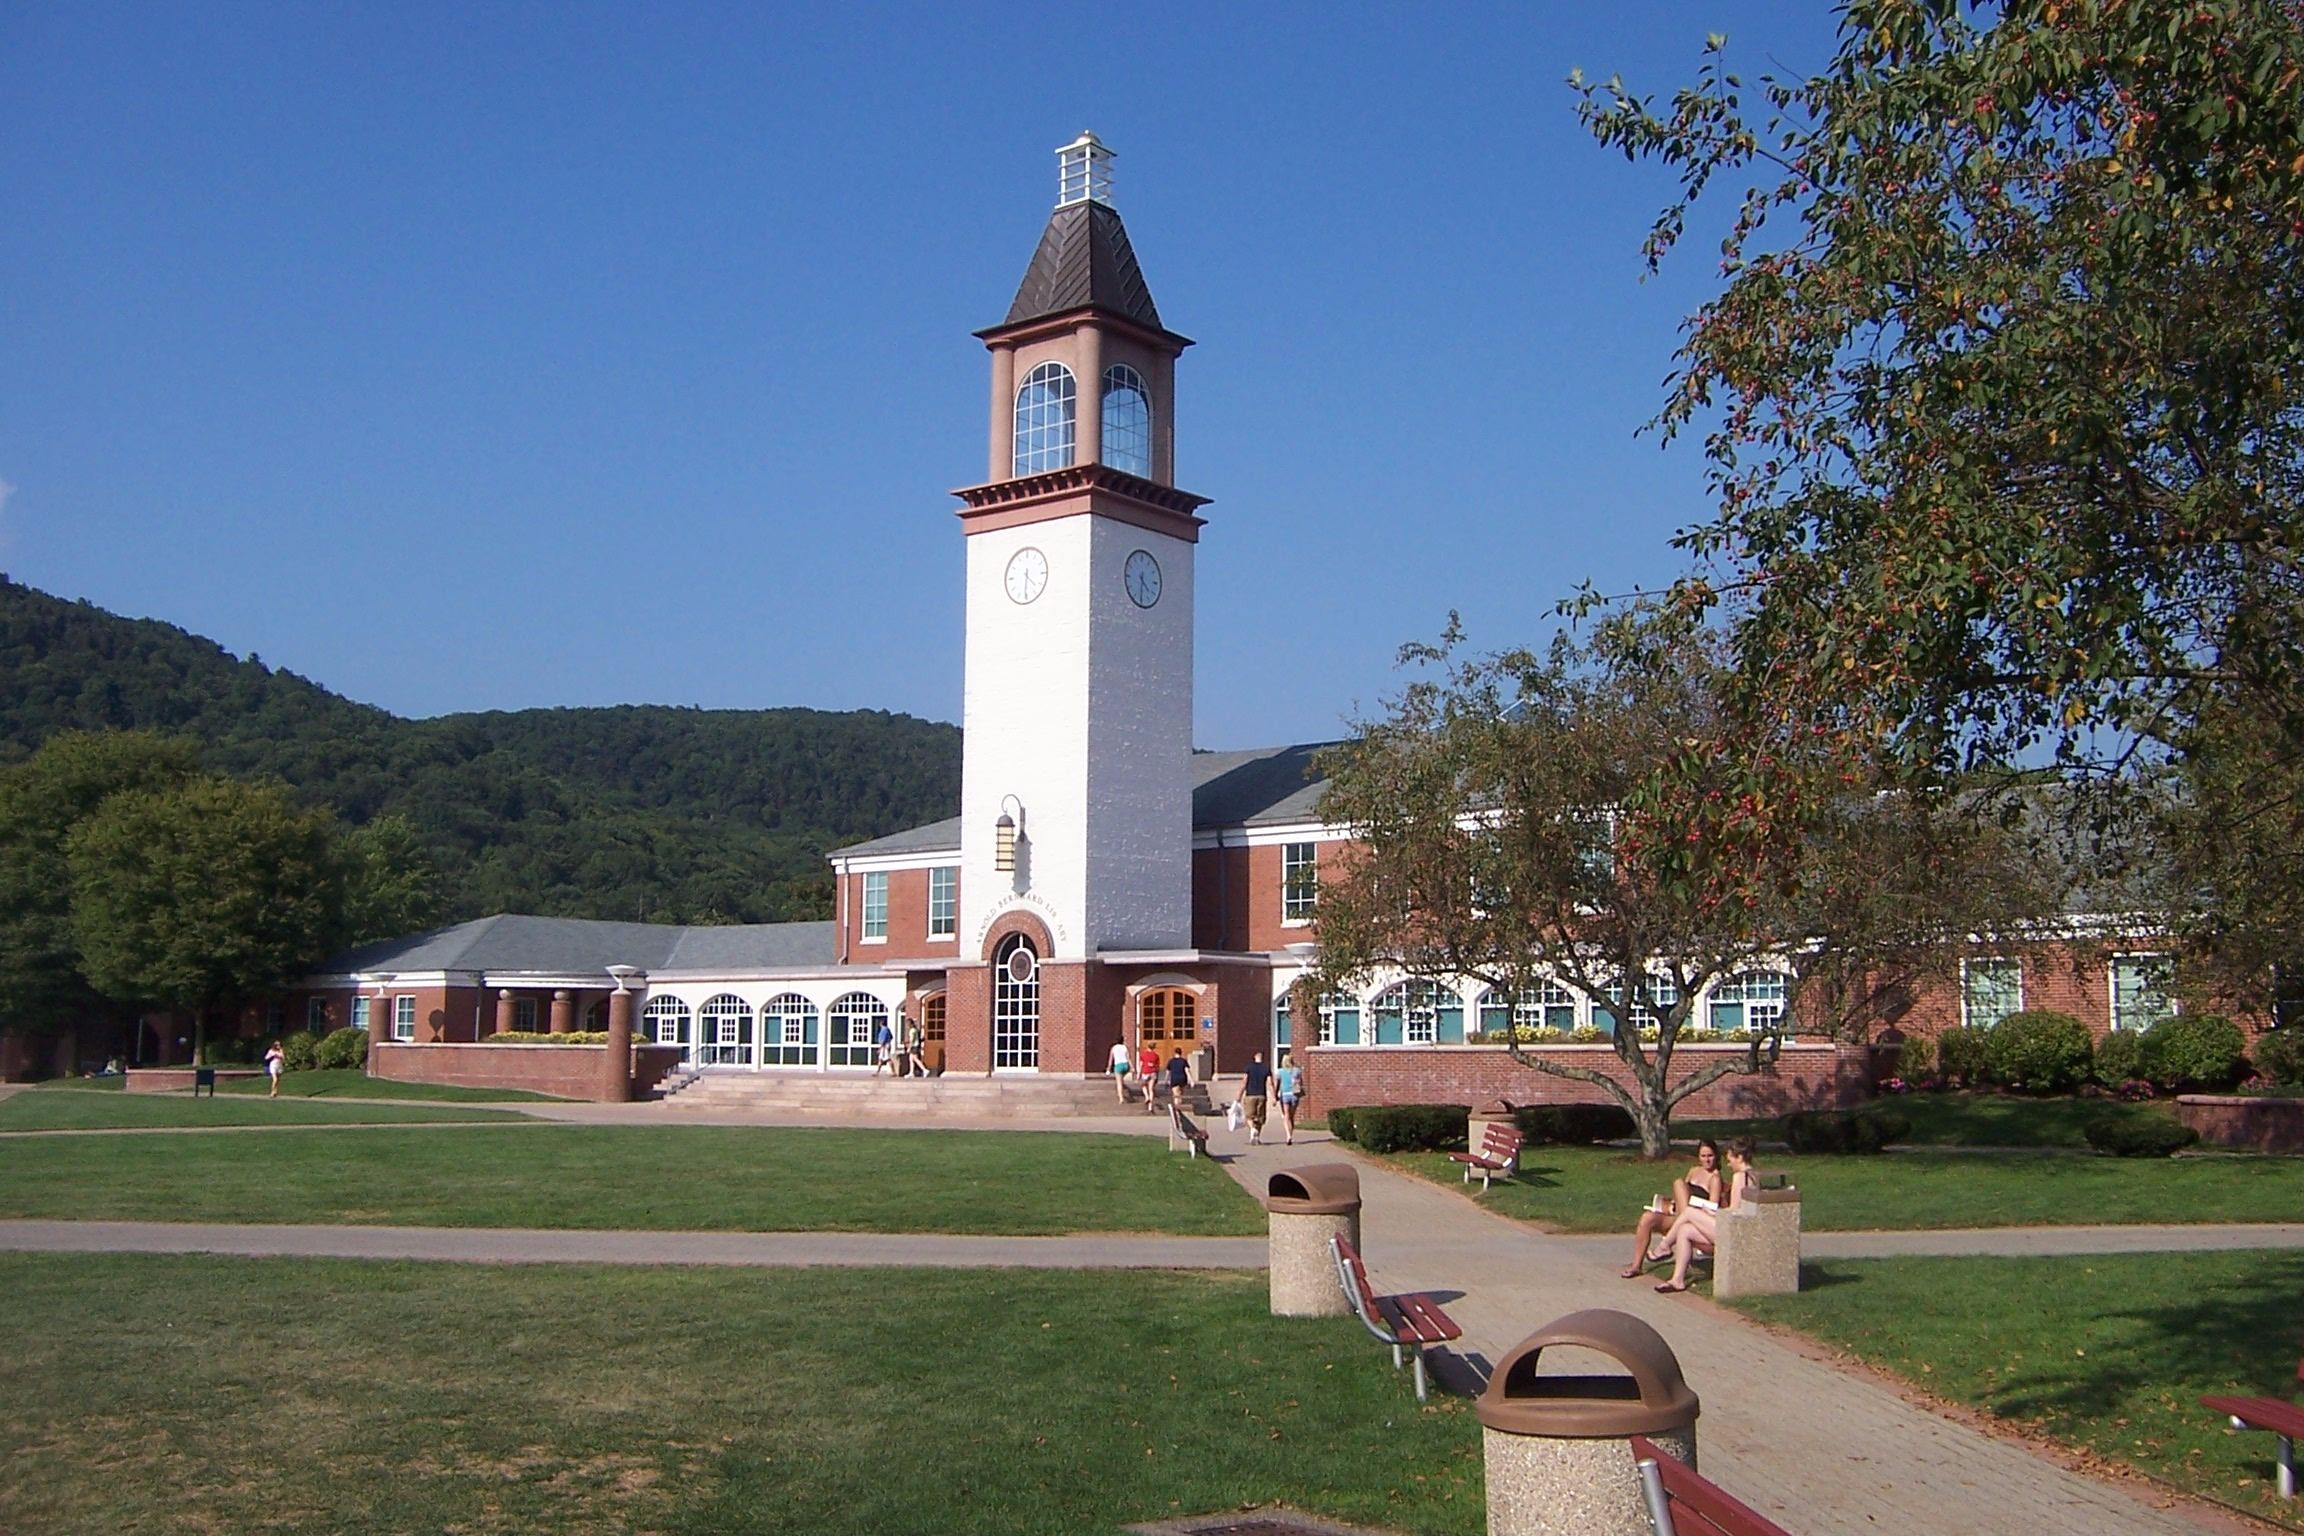 Quinnipiac University's Arnold Bernhard Library and clock tower, with Sleeping Giant in background.